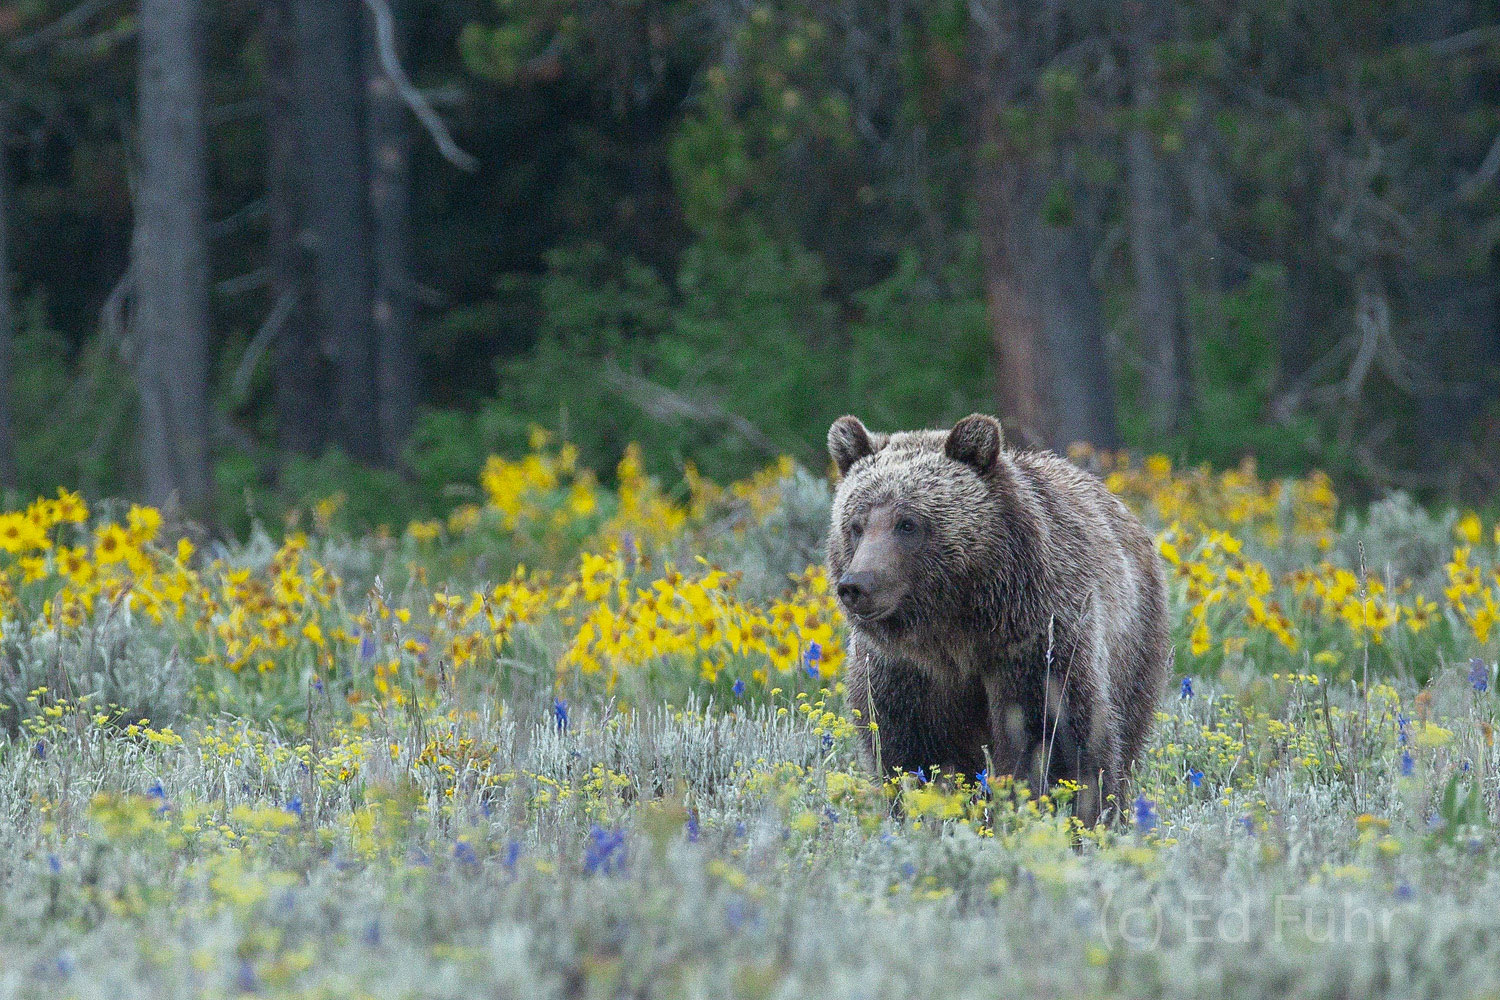 A young male grizzly, one of Blondie's subadults, walks through a meadow of flowers.